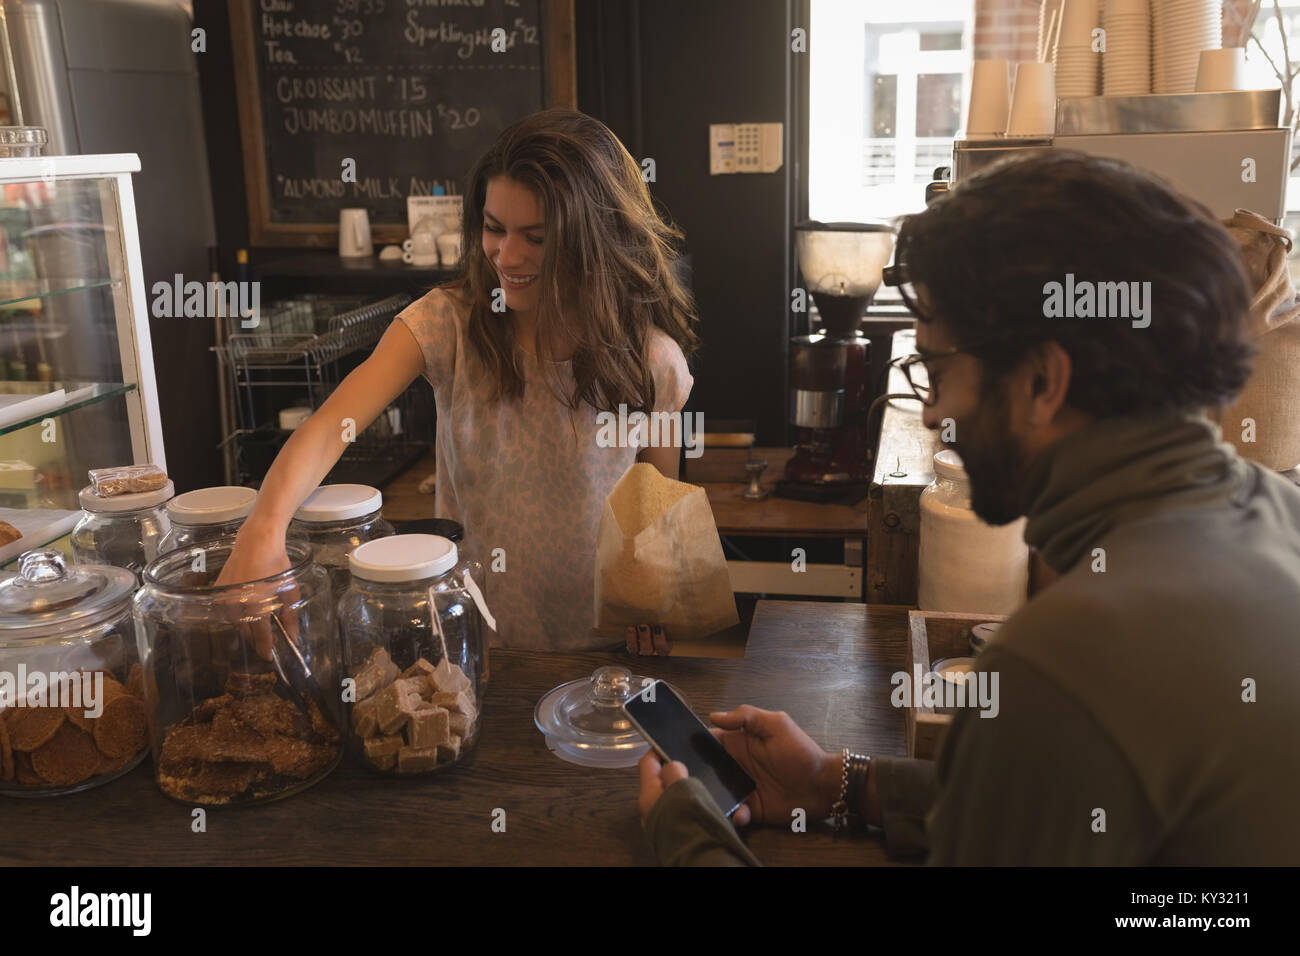 Waitress packing sweet food in paper bag - Stock Image